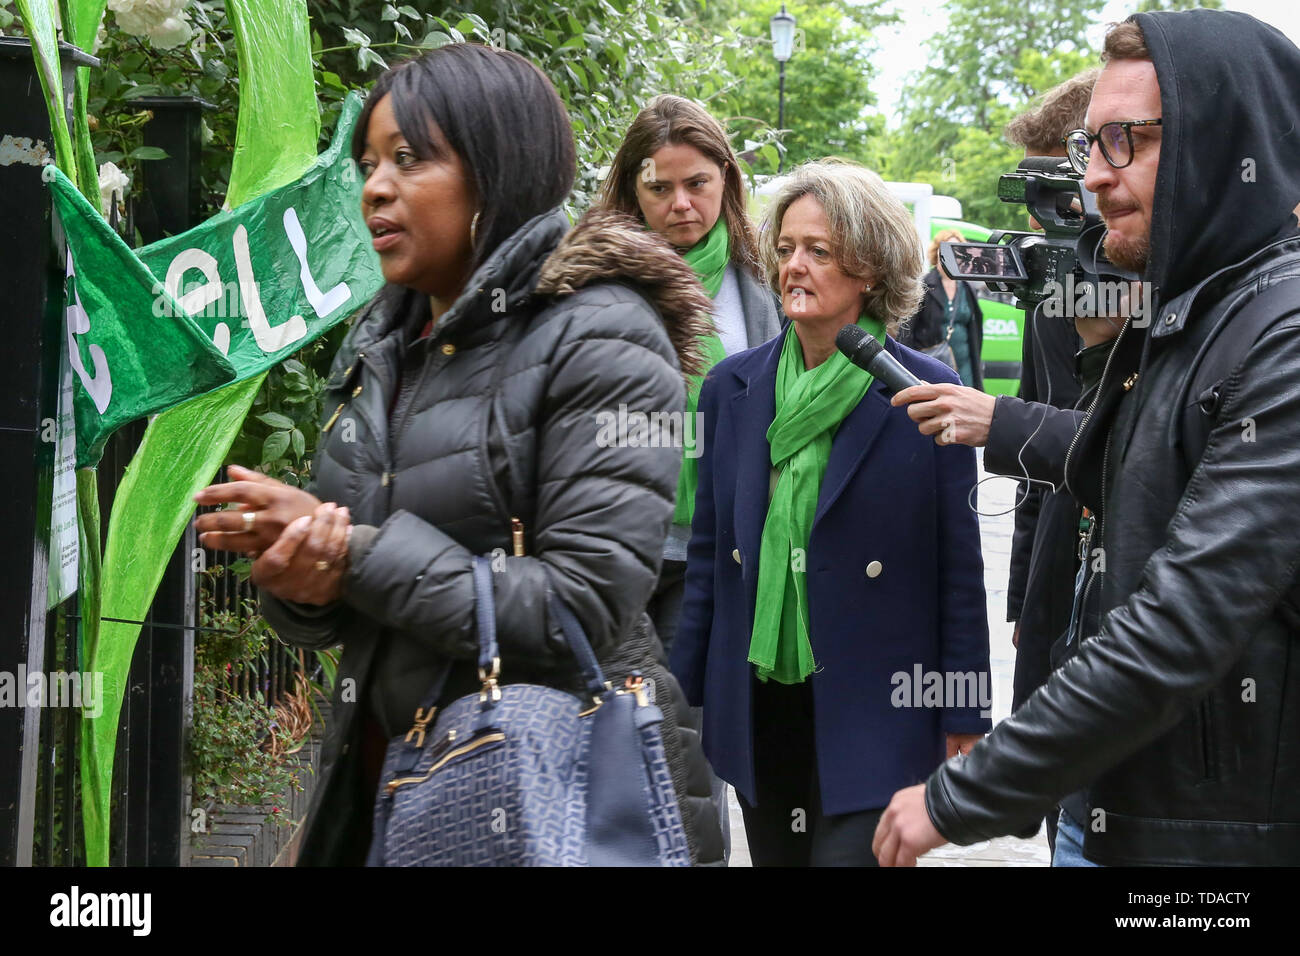 North Kensington, West London. UK 14 Jun 2019 - Media interviews The Kensington and Chelsea leader, Elizabeth Campbell as she arrives at St Helen's Church to commemorate the second anniversary of the Grenfell Tower fire service. On 14 June 2017, just before 1:00Êam a fire broke out in the kitchen of the fourth floor flat at the 24-storey residential tower block in North Kensington, West London, which took the lives of 72 people. More than 70 others were injured and 223 people escaped.  Credit: Dinendra Haria/Alamy Live News - Stock Image